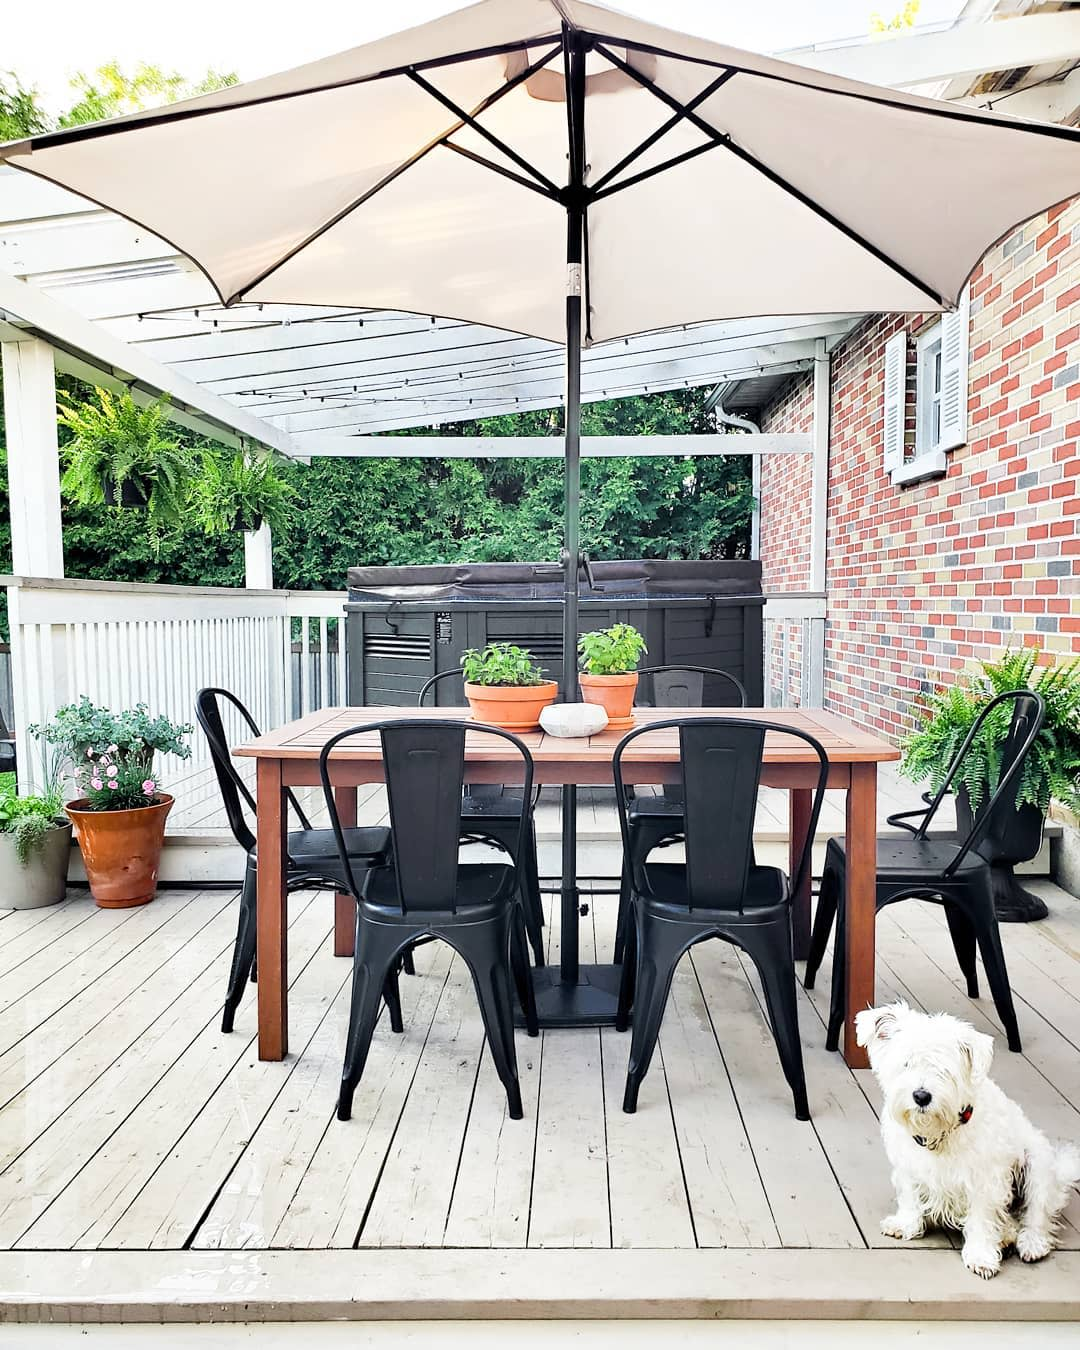 Dining Backyard Ideas on a Budget -caitlin.ritchie